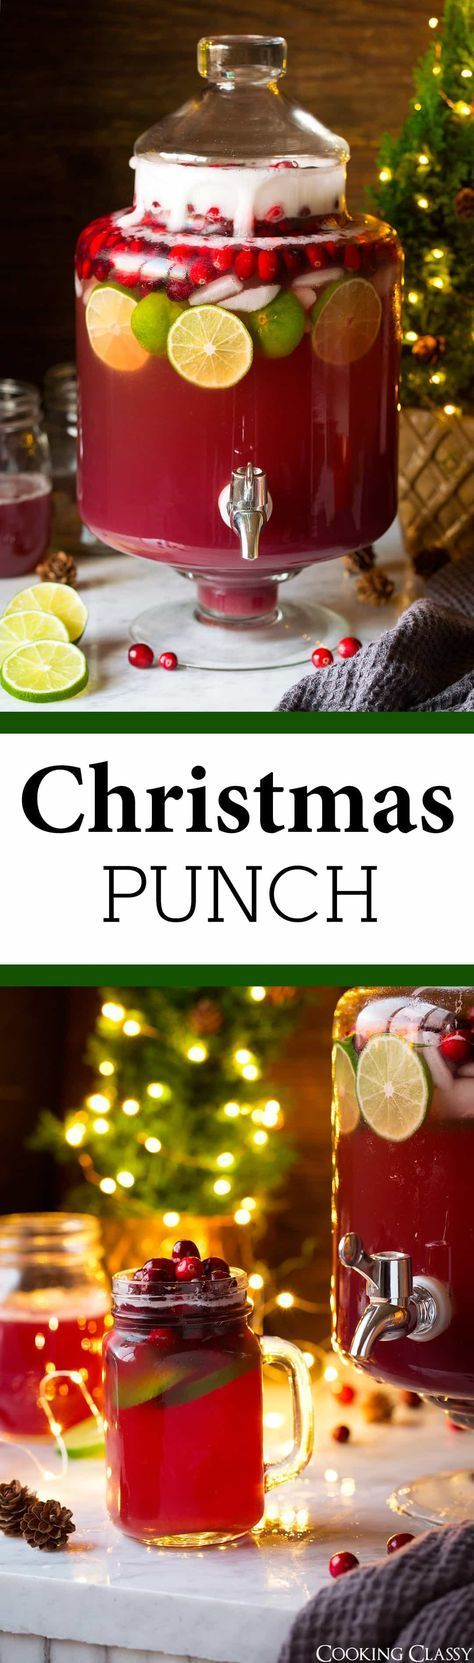 Christmas Punch - It's so delicious and perfectly festive And it only takes minutes to make. @cookingclassy